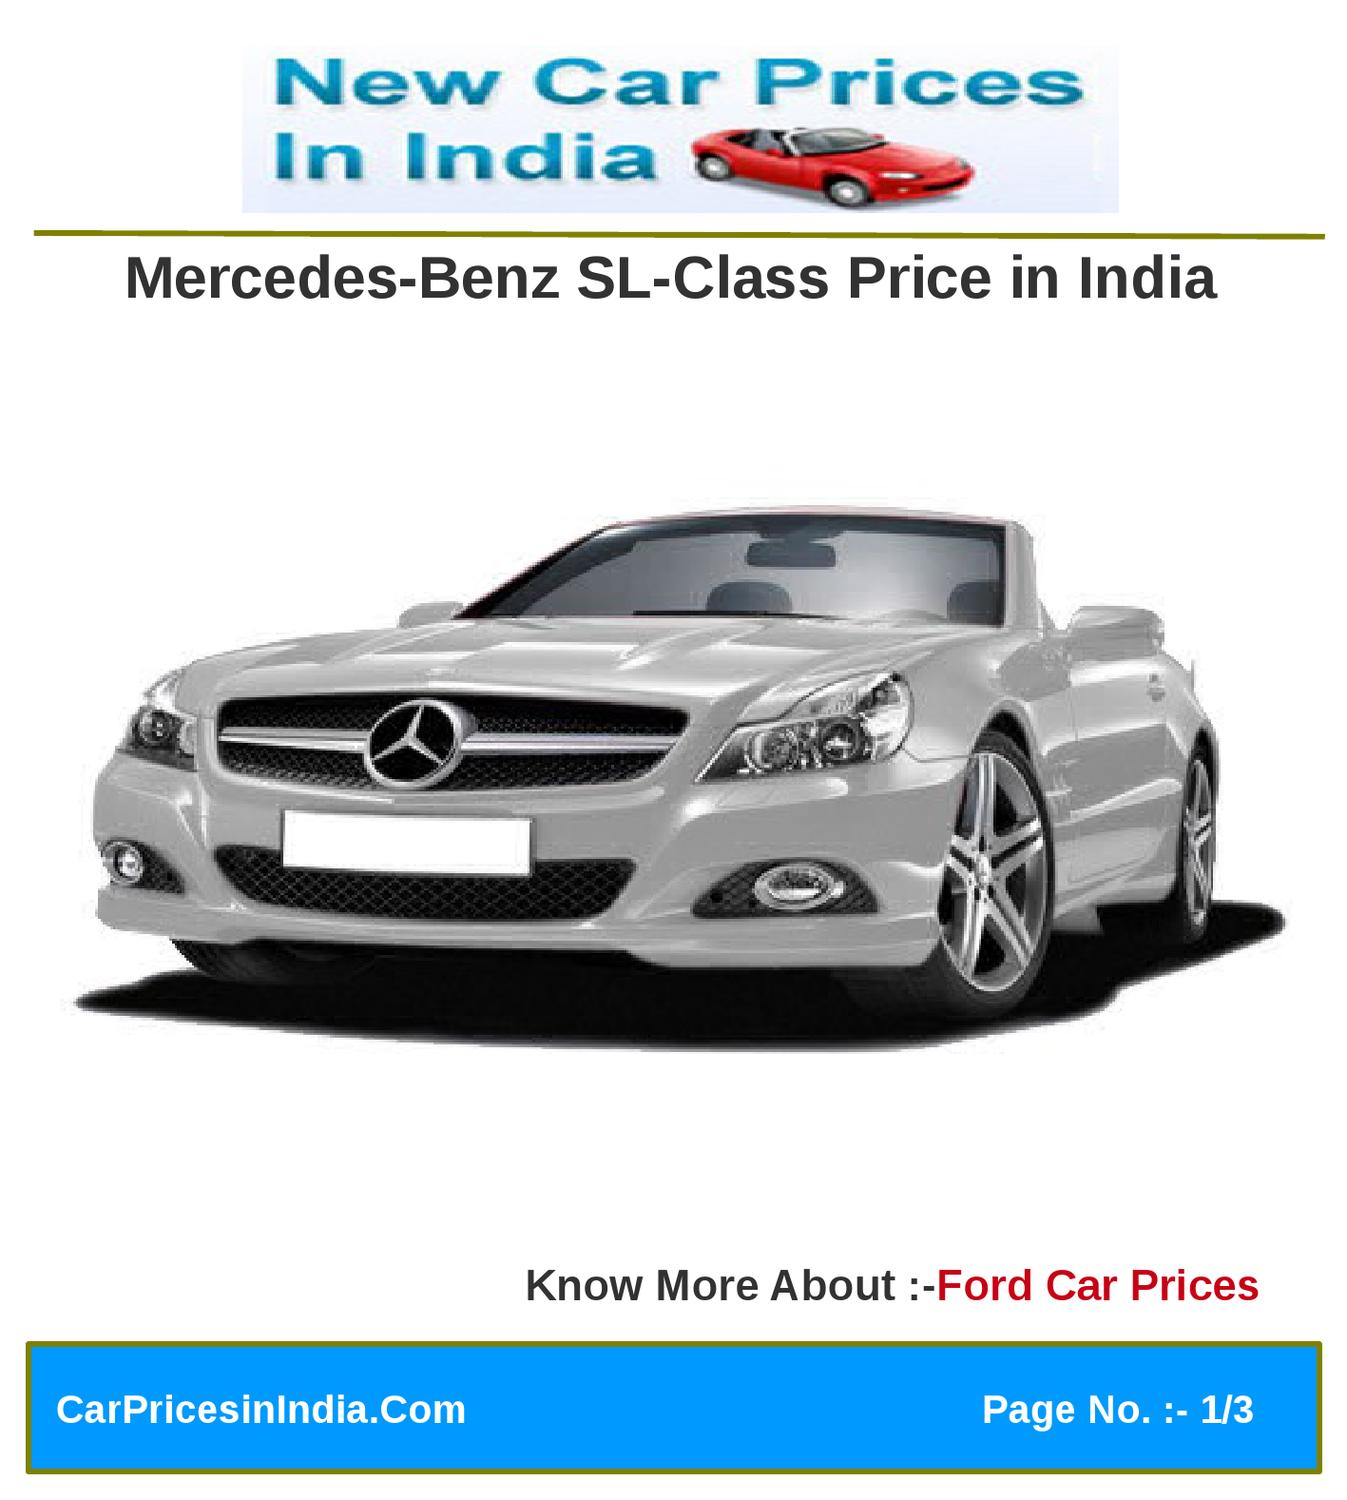 Mercedes-Benz SL-Class Price In India By Microsite Team